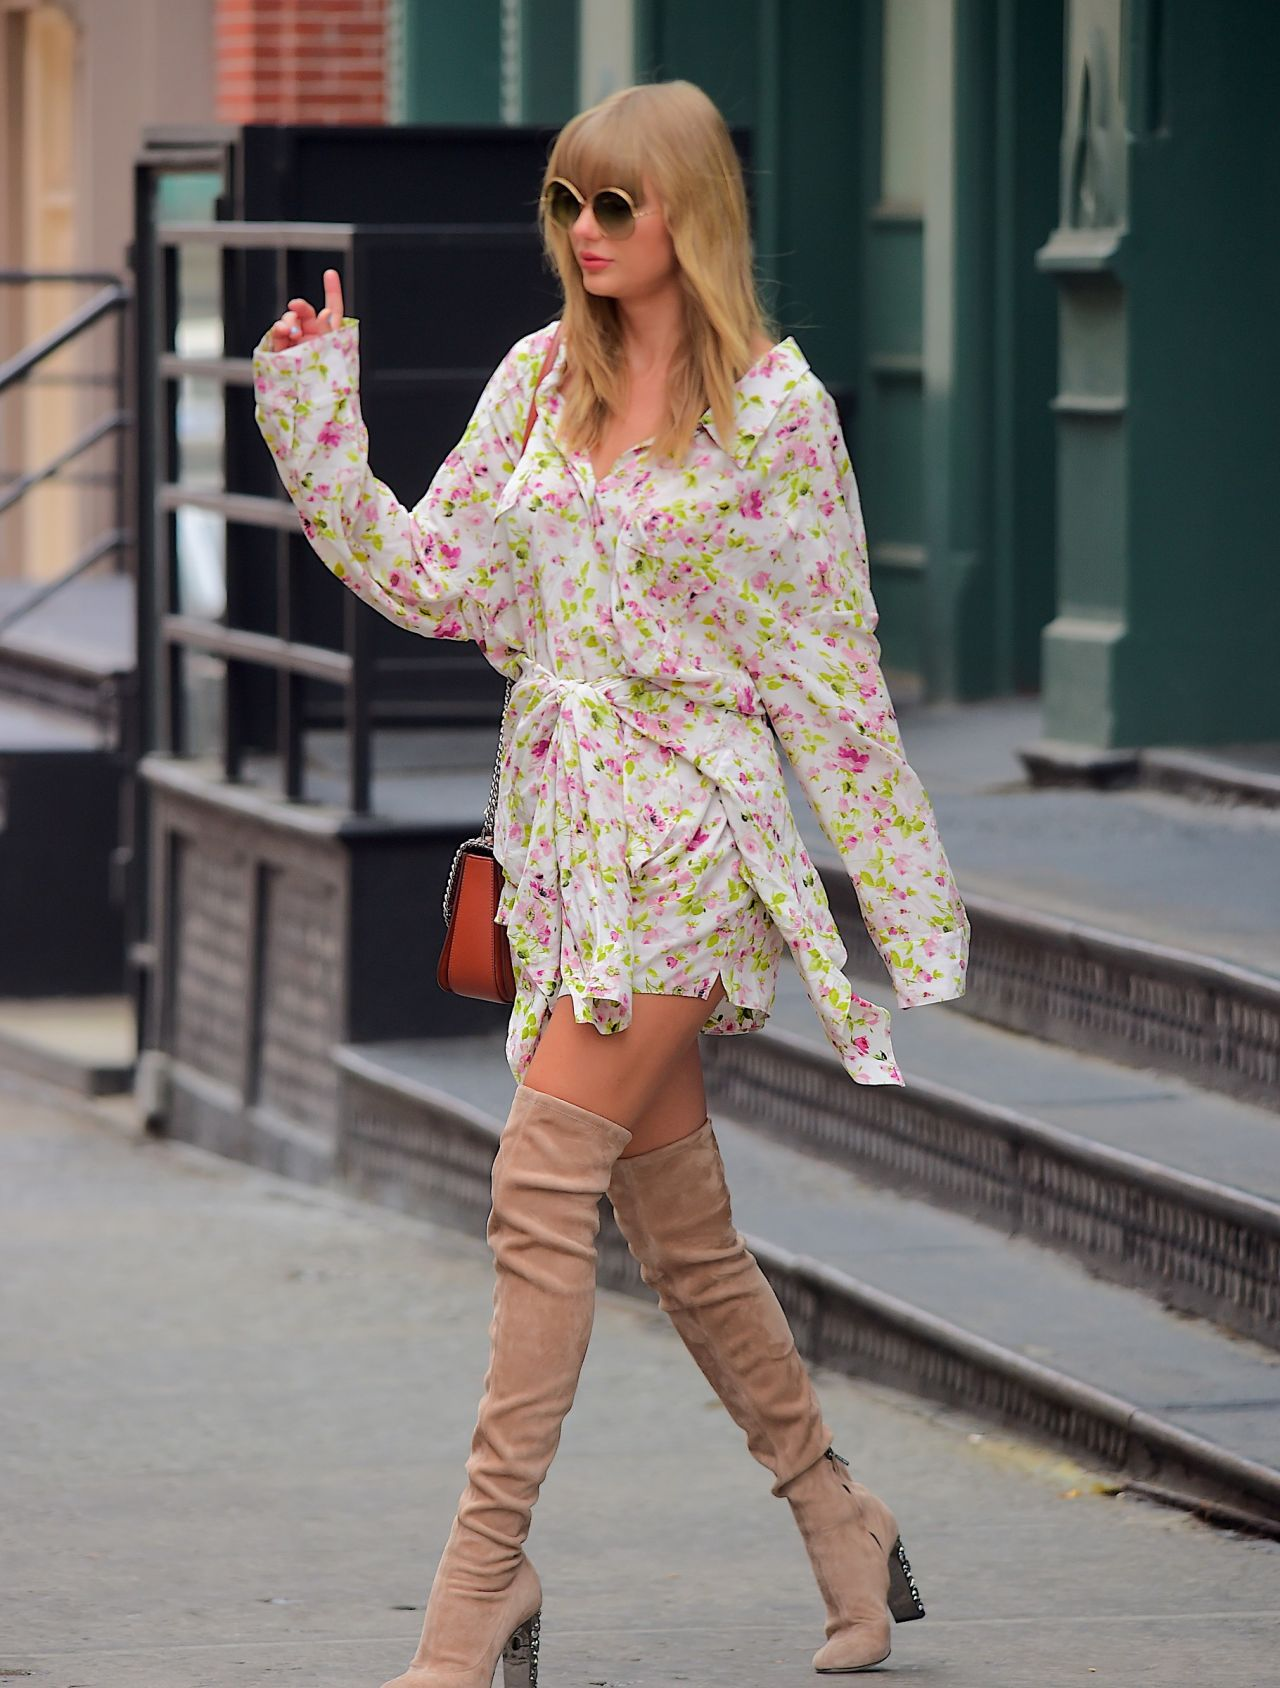 taylor swift in a floral dress and large sunglasses  15  2018